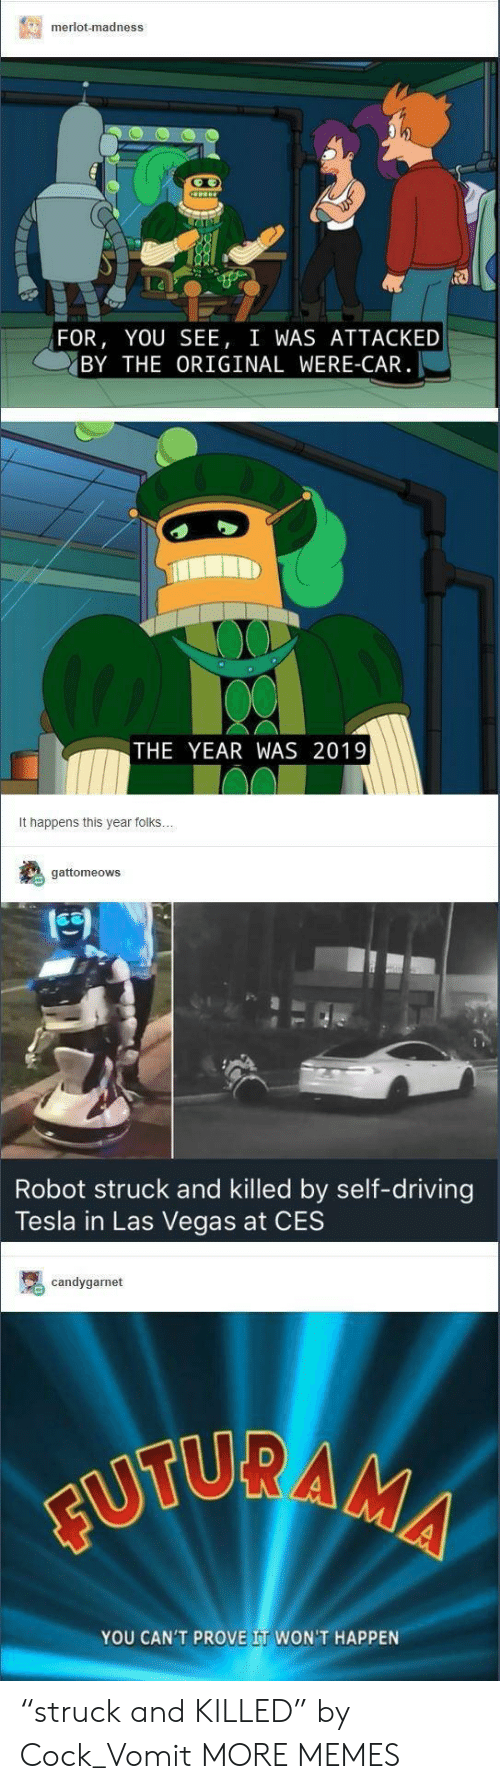 """Las Vegas: merlot-madness  FOR, YOU SEE, I WAS ATTACKED  BY THE ORIGINAL WERE-CAR  THE YEAR WAS 2019  It happens this year folks  gattomeows  Robot struck and killed by self-driving  Tesla in Las Vegas at CES  candygarnet  YOU CAN'T PROVE IT WON'T HAPPEN """"struck and KILLED"""" by Cock_Vomit MORE MEMES"""